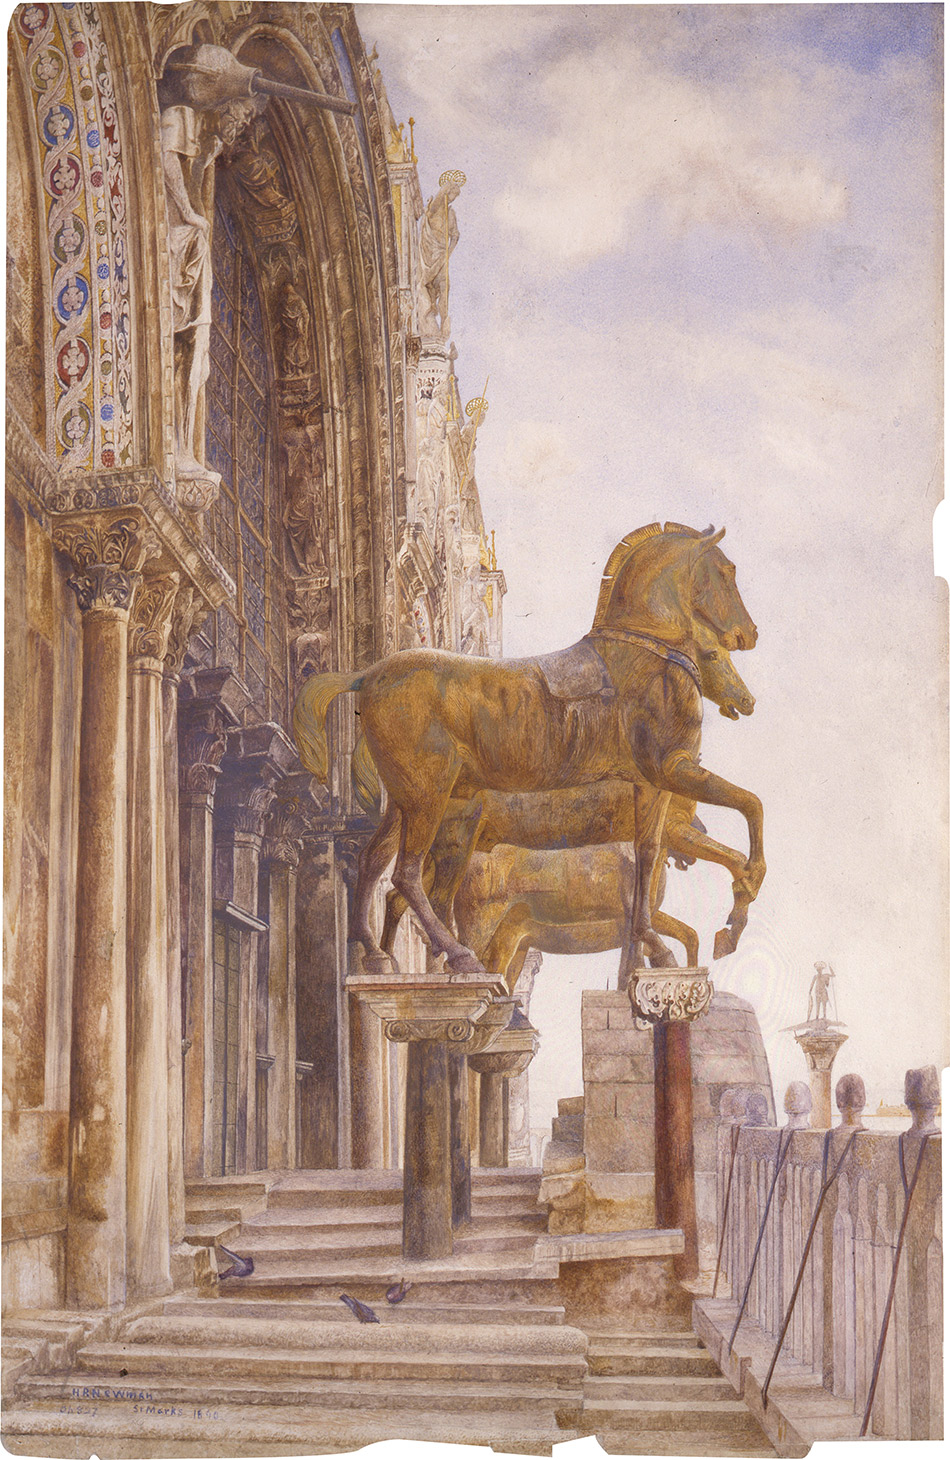 Henry-Roderick-Newman_The-Horses-of-St.-Marks-1890_4104-100_Rob-and-Mary-Joan-Leith_950w